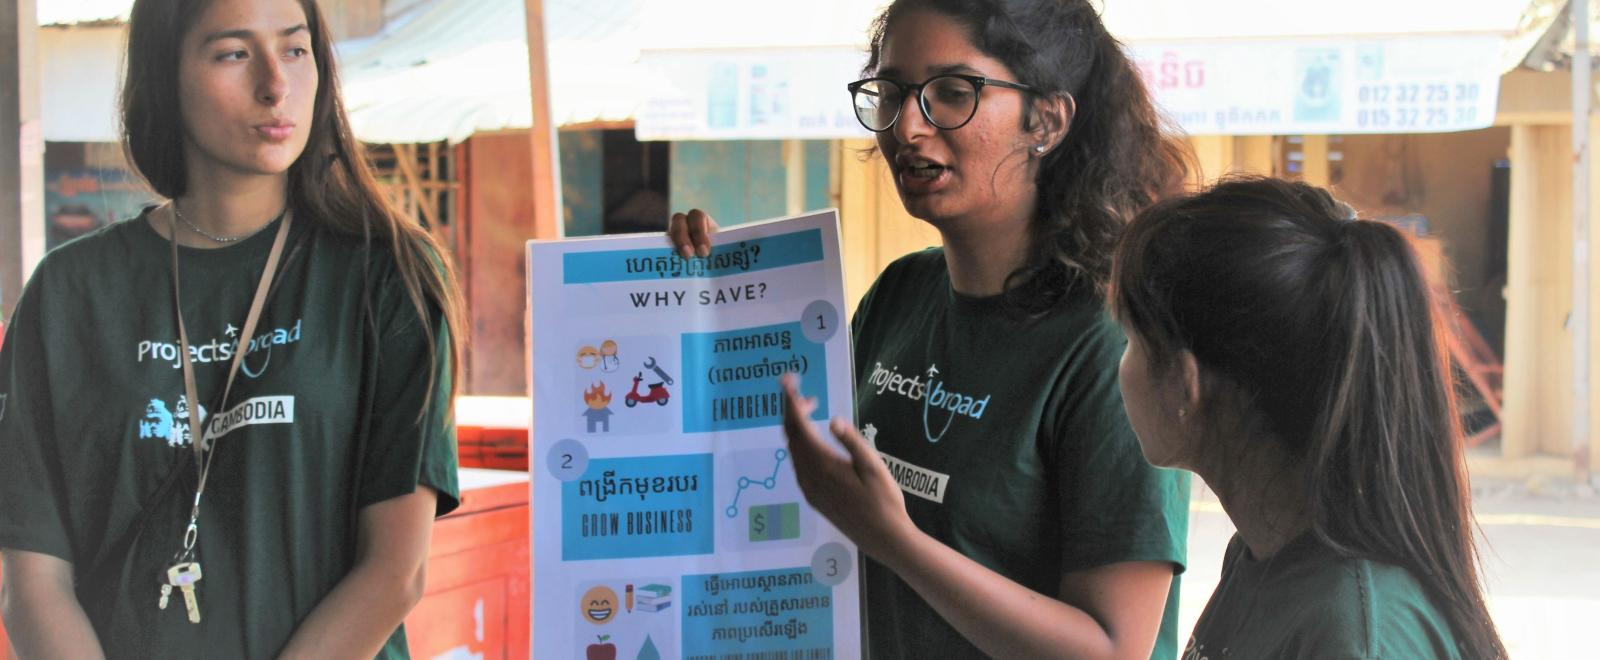 A Microfinance intern in Cambodia explains the importance of building savings.